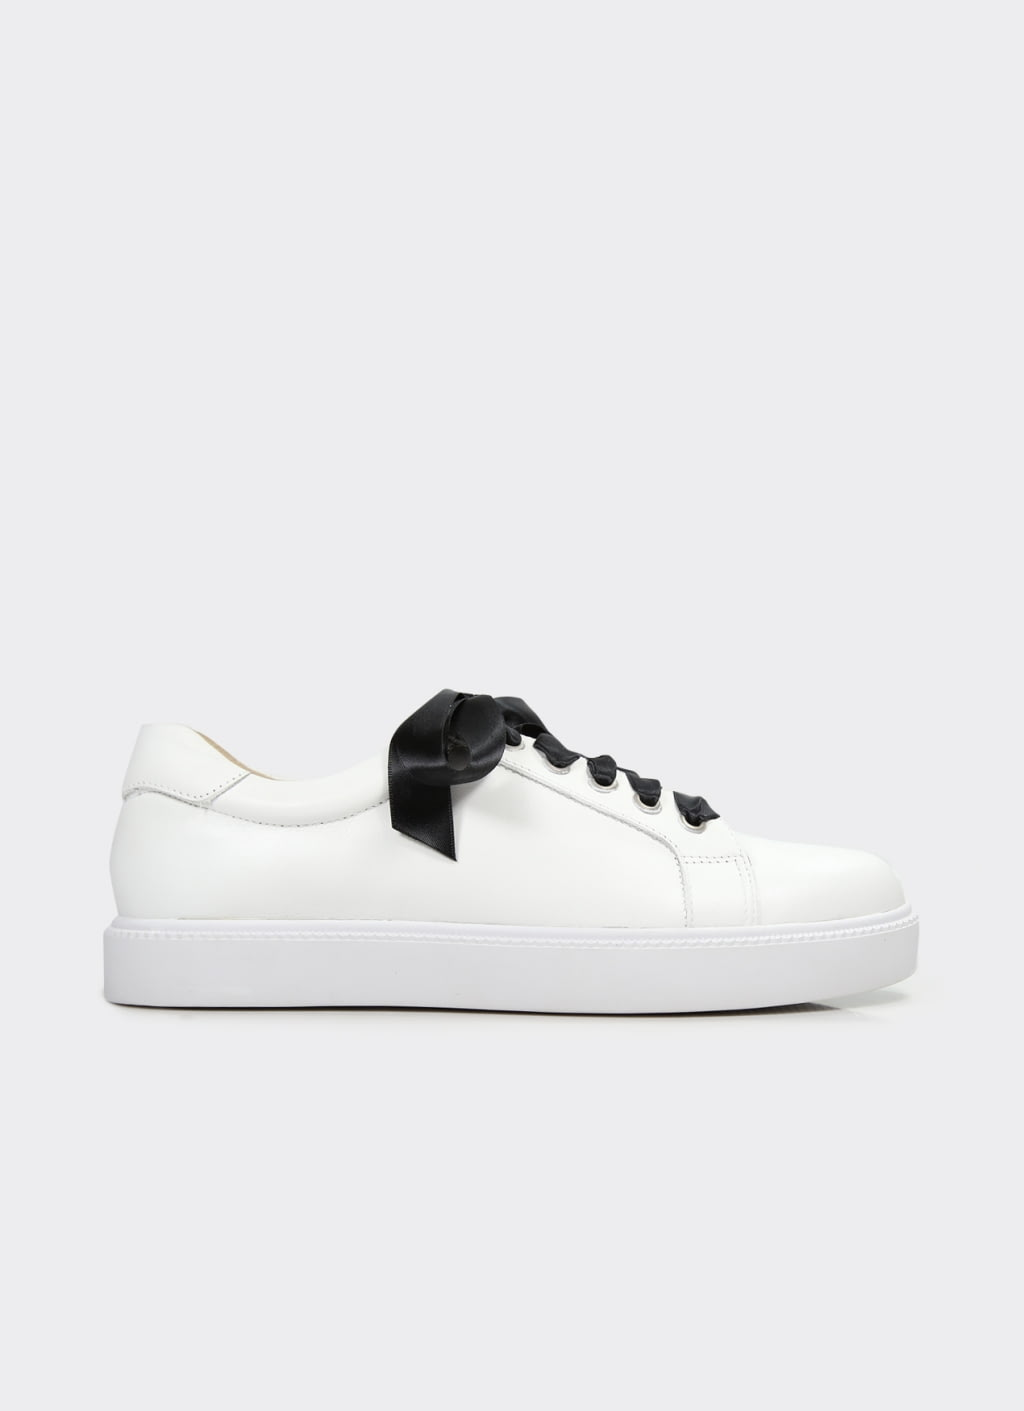 Winston Smith White Charlotte Sneakers